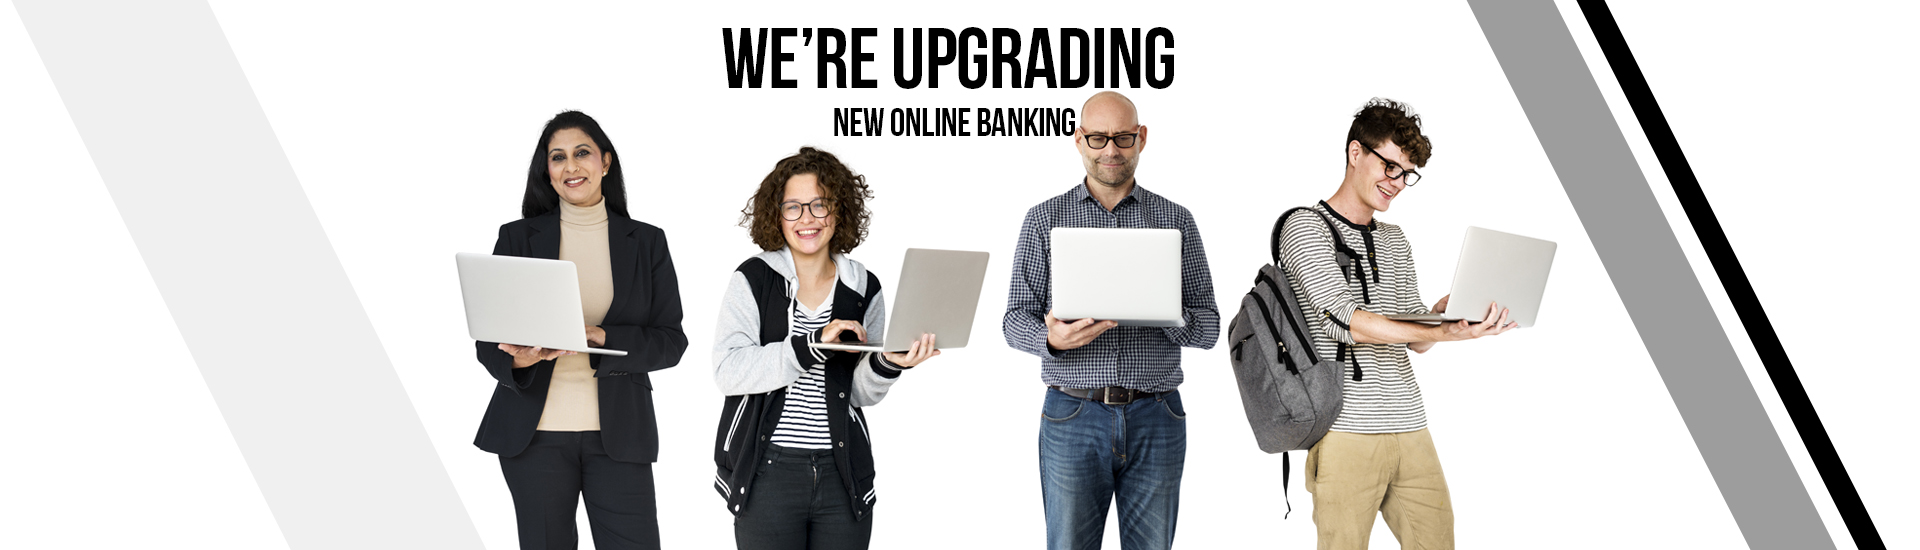 New-Online-Banking-Were-Upgrading-Homepage-Rotator-v5